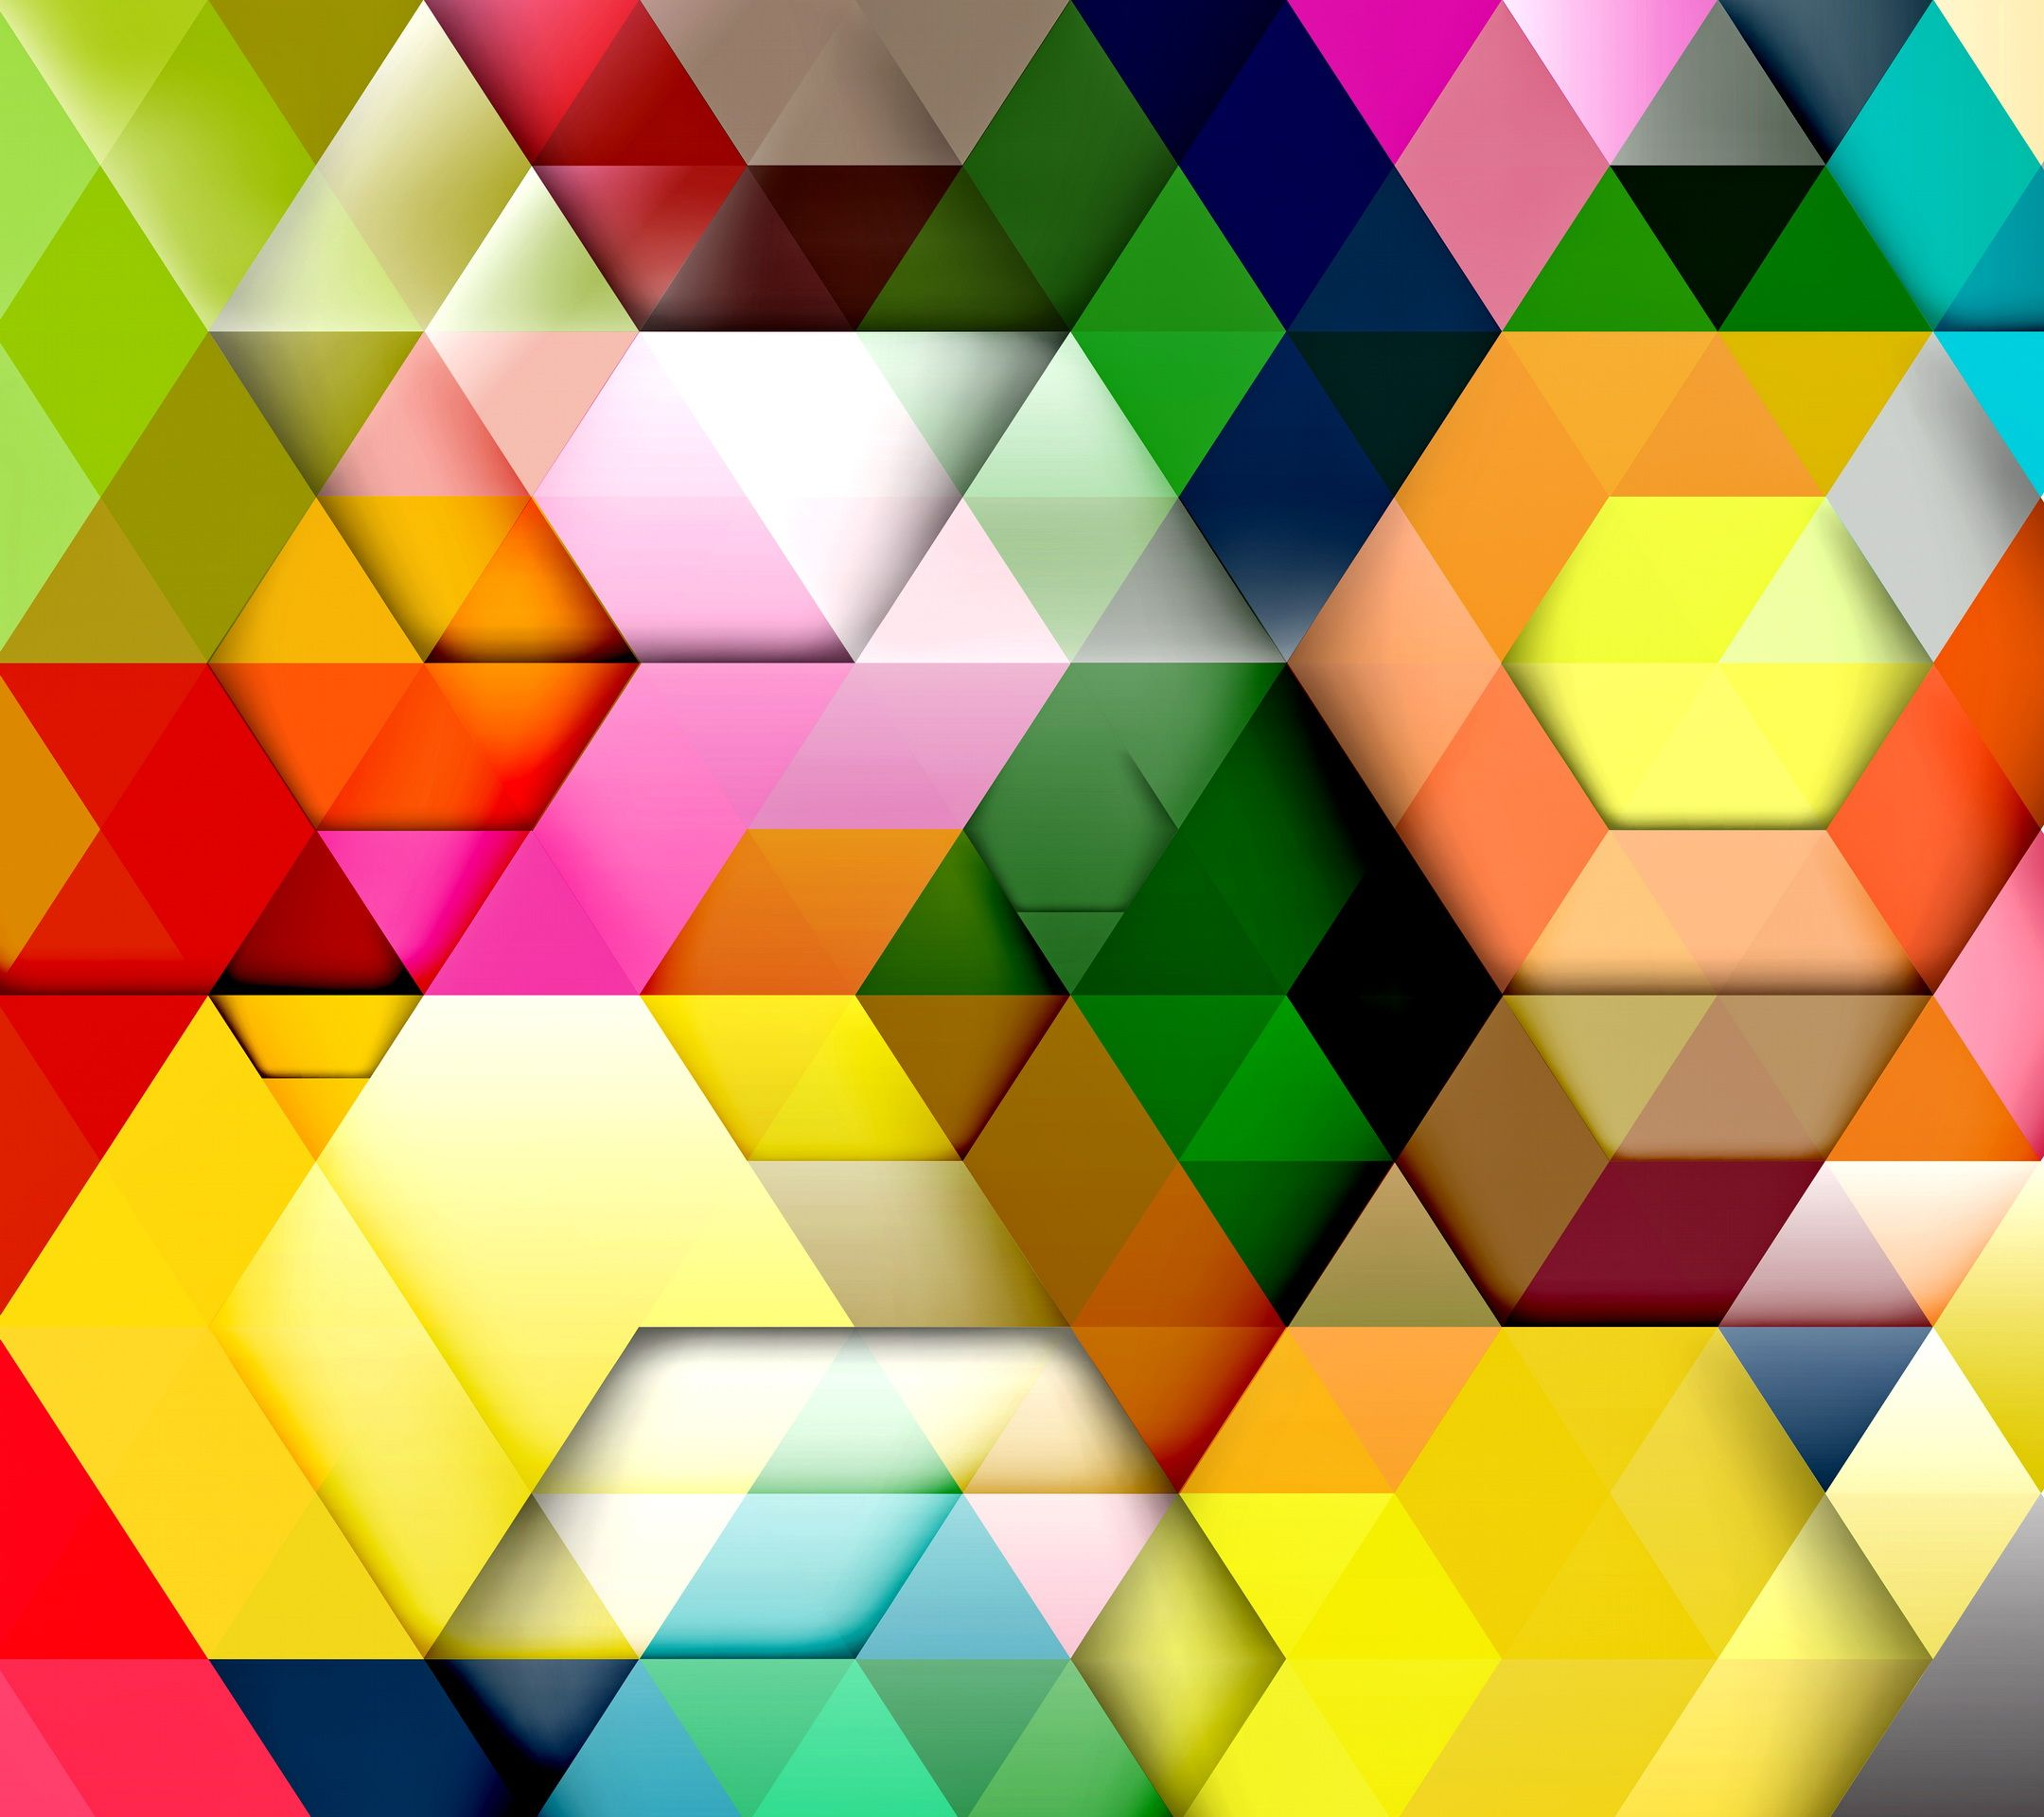 Colorful Iphone Wallpaper: Tap To See More #colourful #geometric